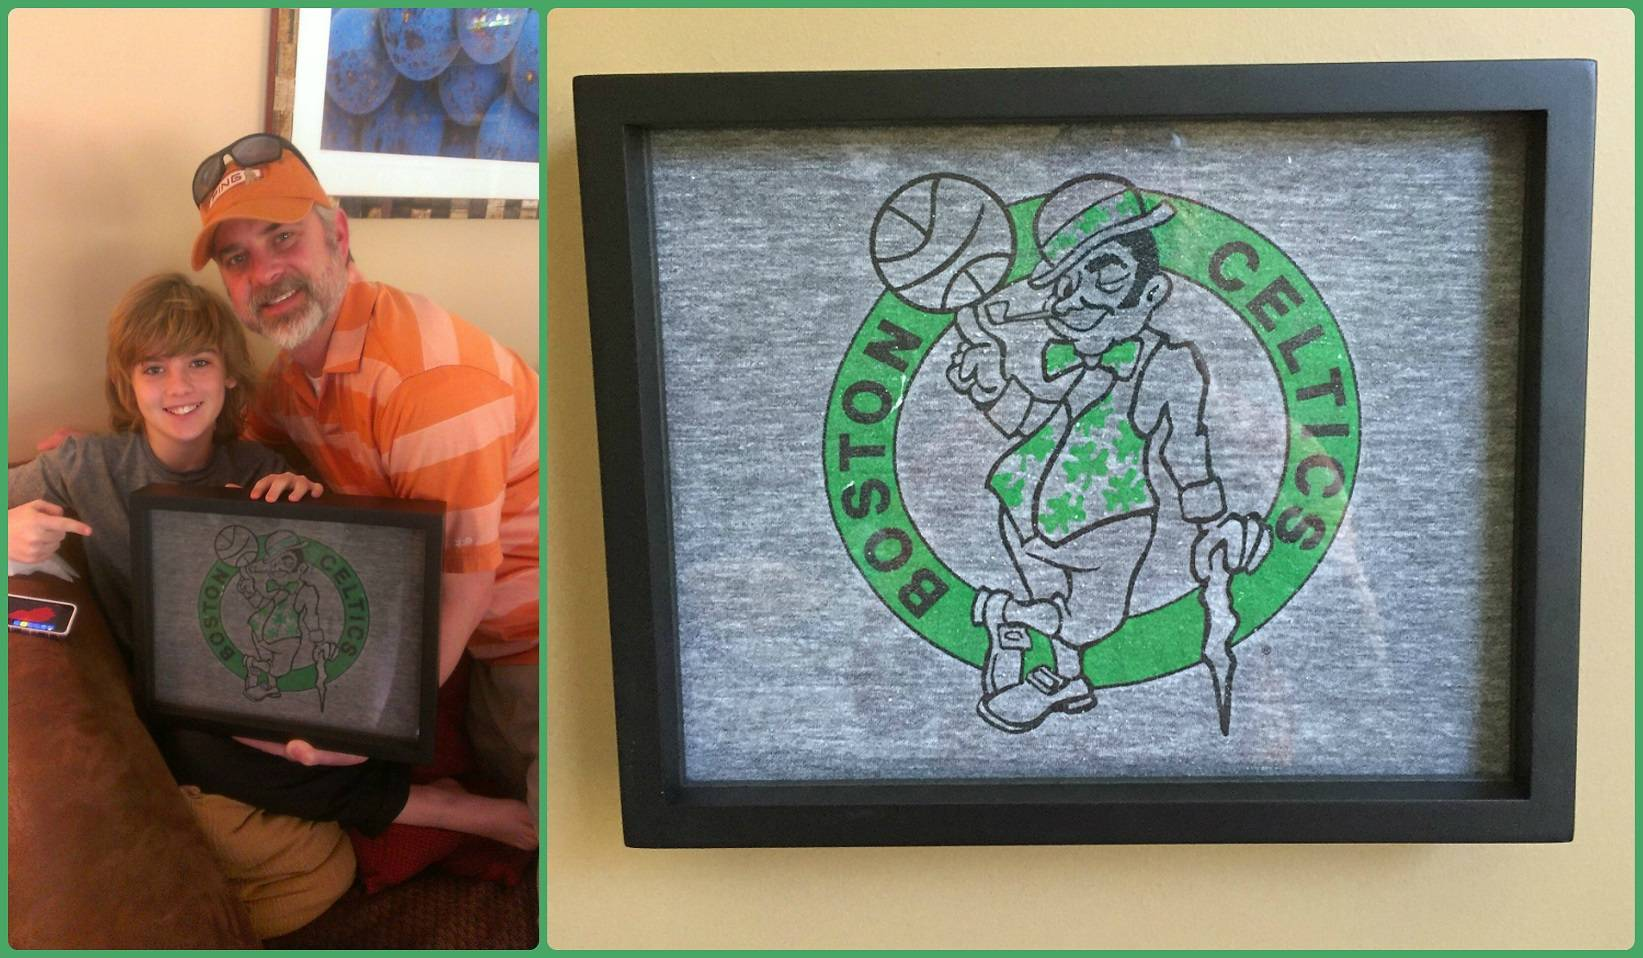 Shart.com Happy Customer with his son and his gift of a framed Boston Celtics Tee Shirt